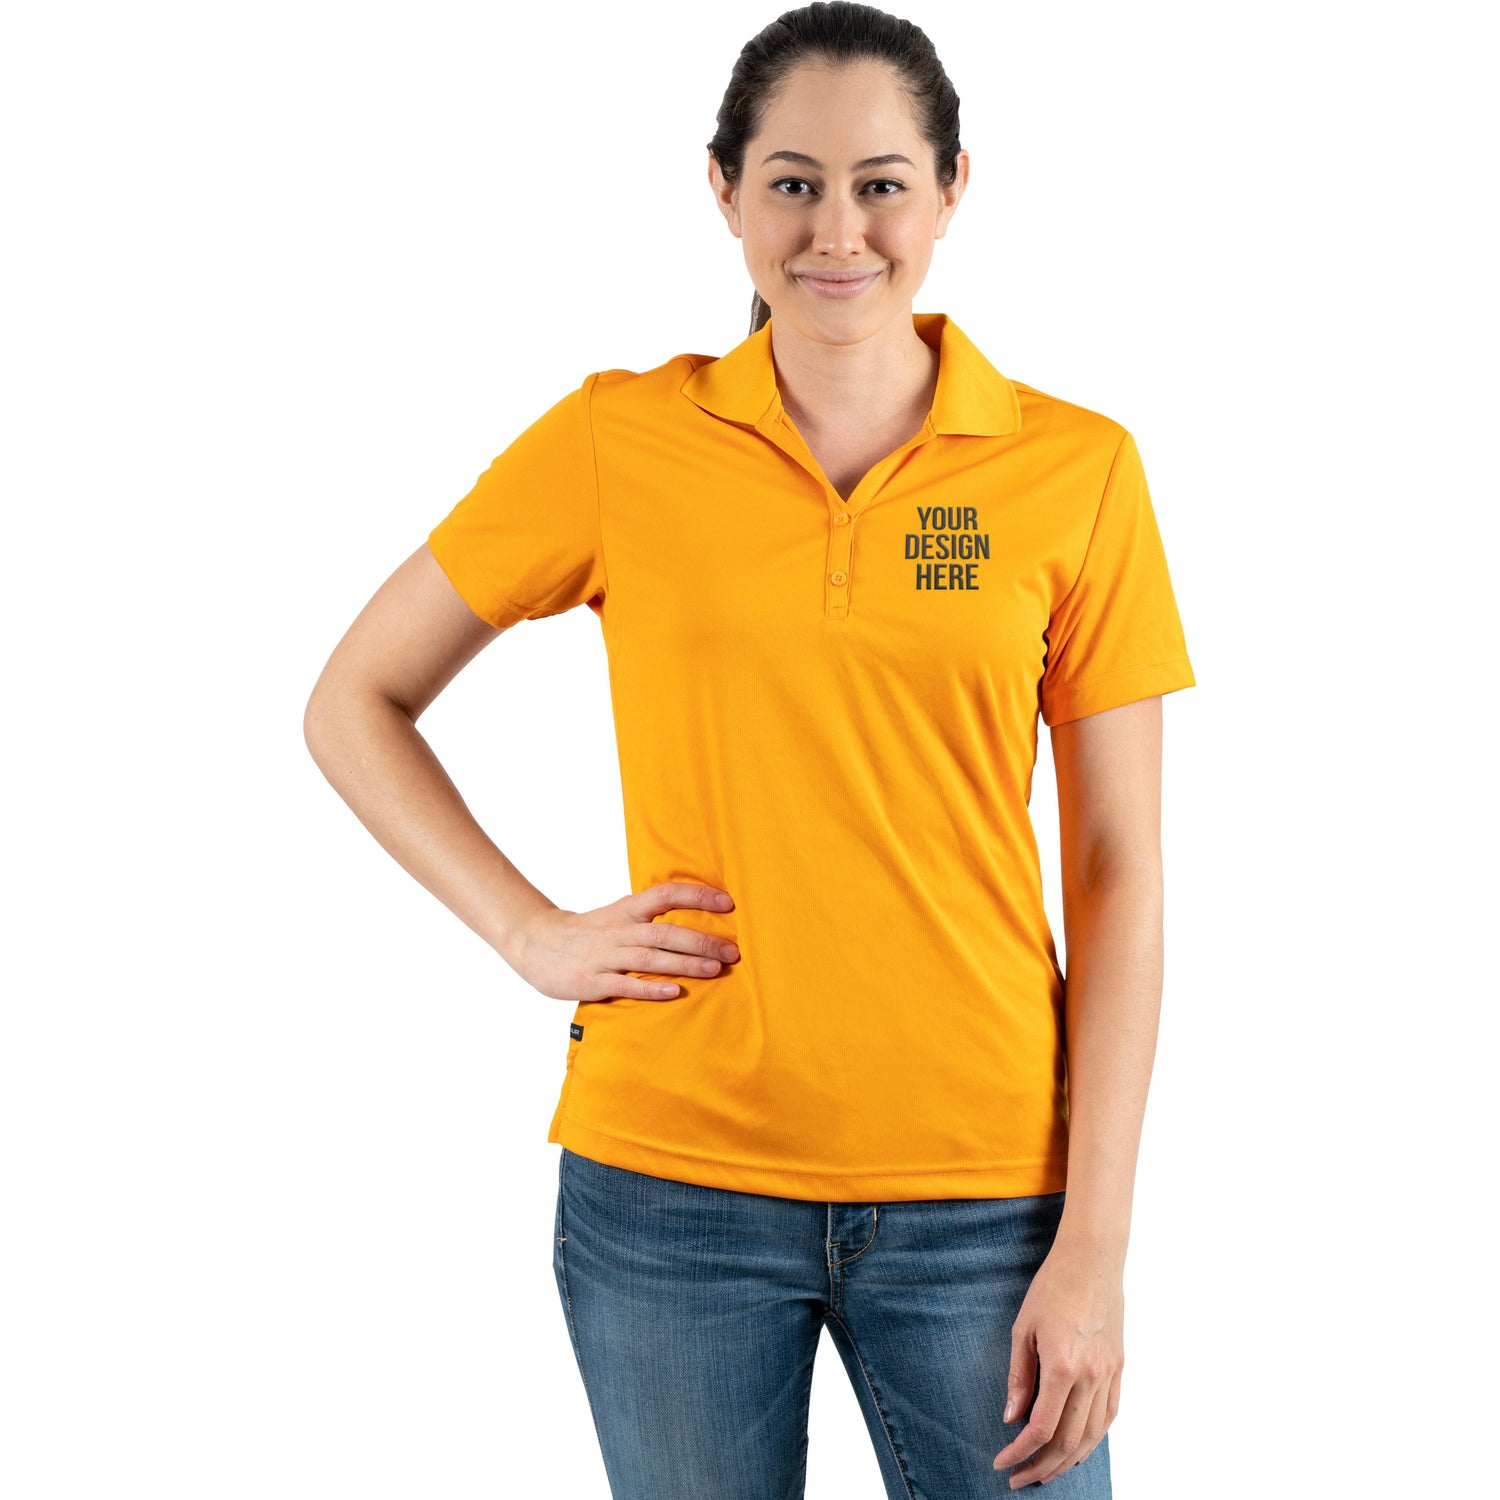 Promotional Womens Moreno Short Sleeve Polo Shirt By Trimarks With